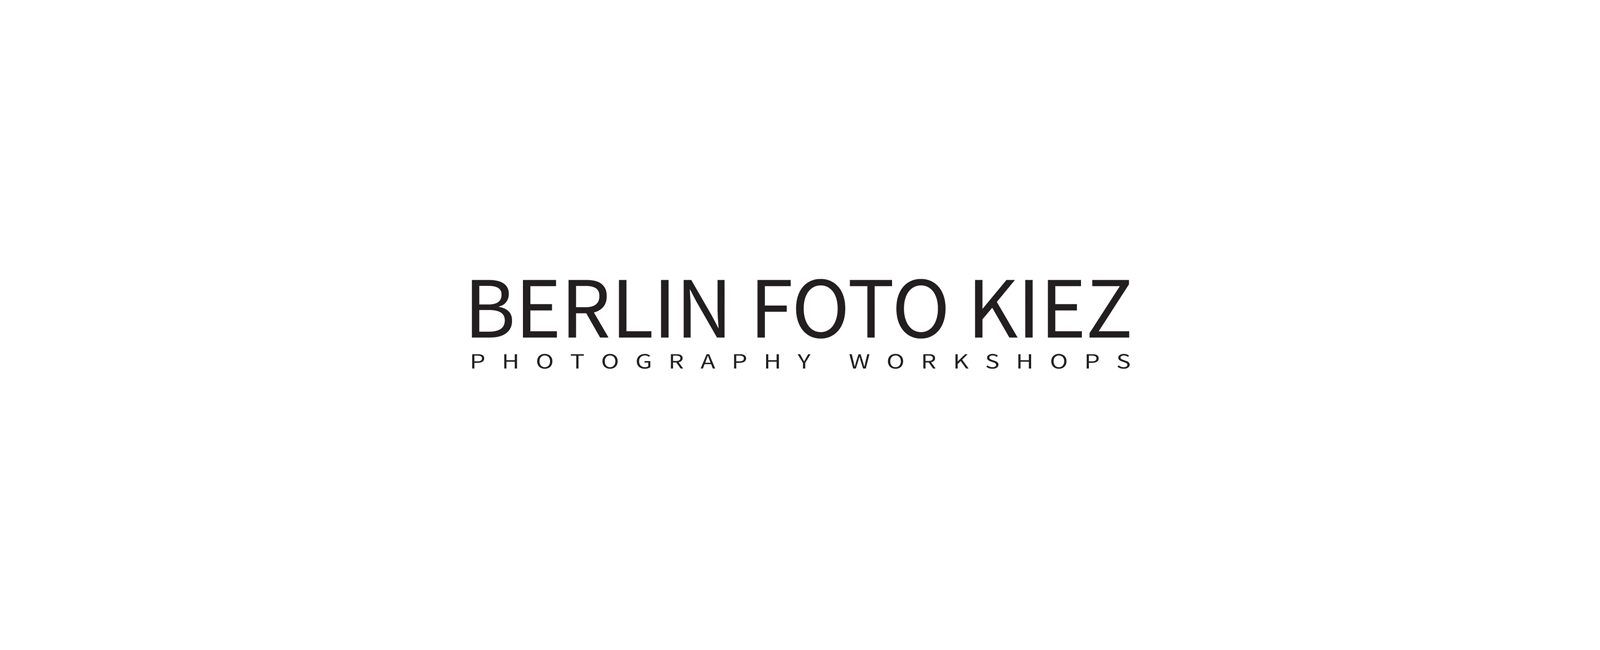 Submission Deadline On June 5, 2017: Berlin Foto Kiez | Anders Petersen Workshop